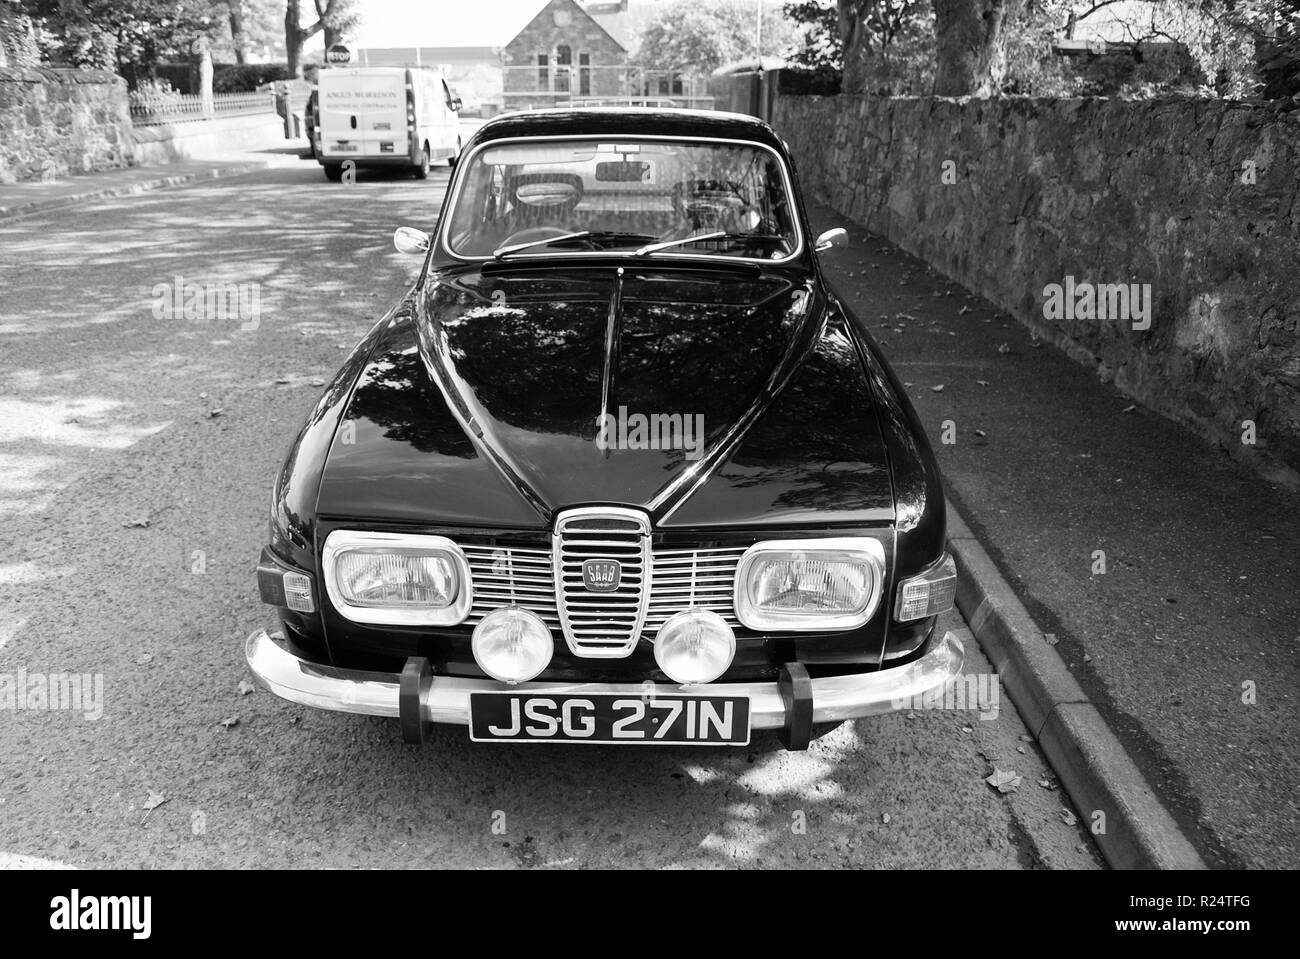 Stornoway, United Kingdom - March 19, 2010: retro automobile on asphalt road. Saab car parked on street. Transport and transportation. It is the one car I want. Wanderlust and travelling. - Stock Image